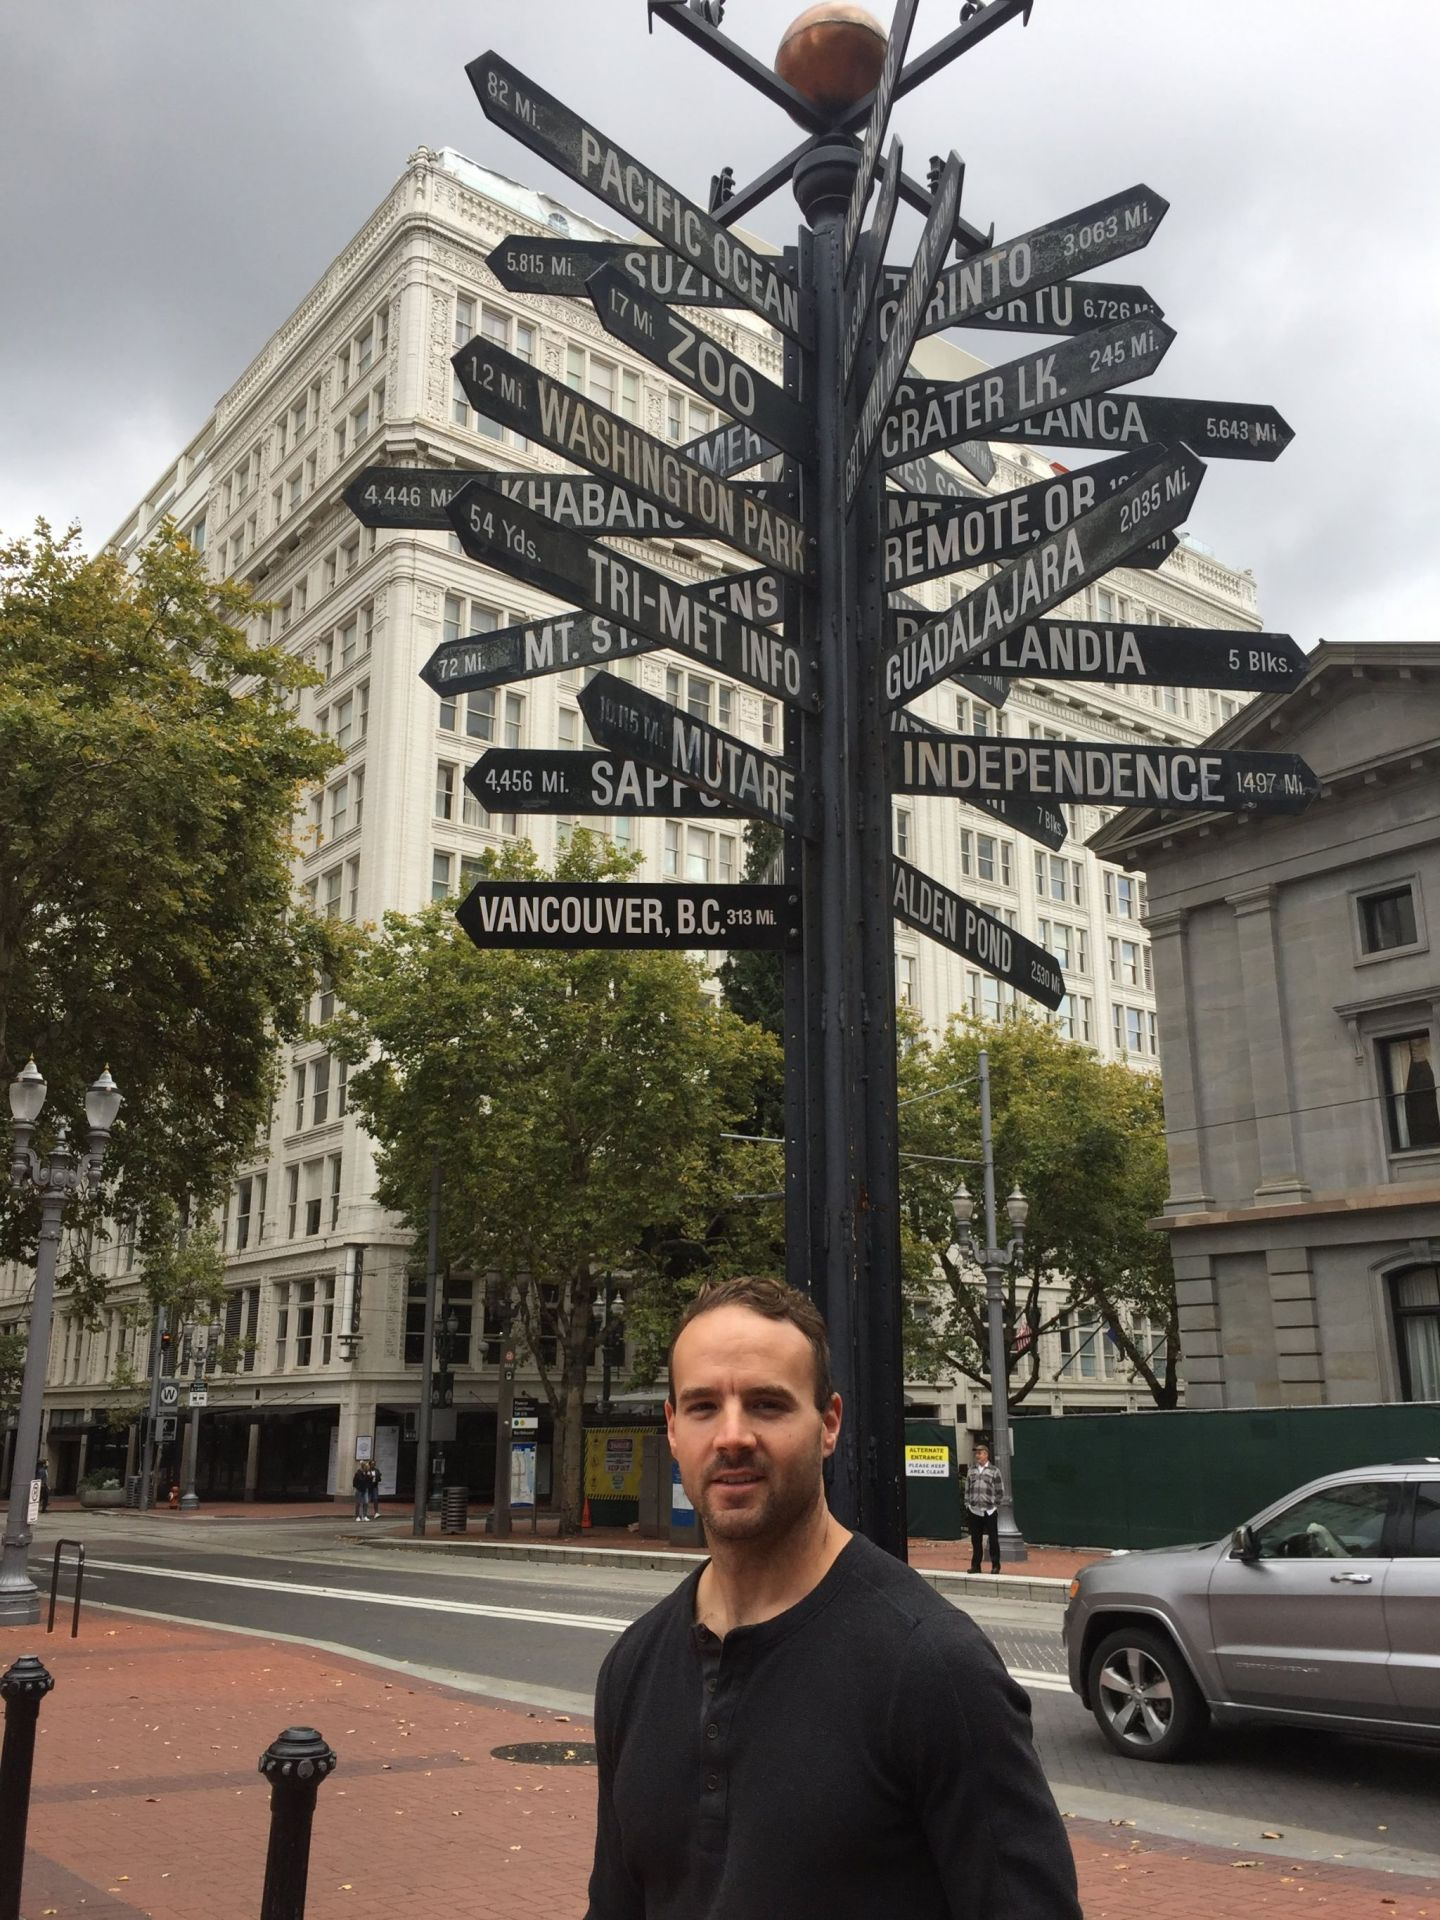 Jordan with the signpost in Portland's Pioneer Square